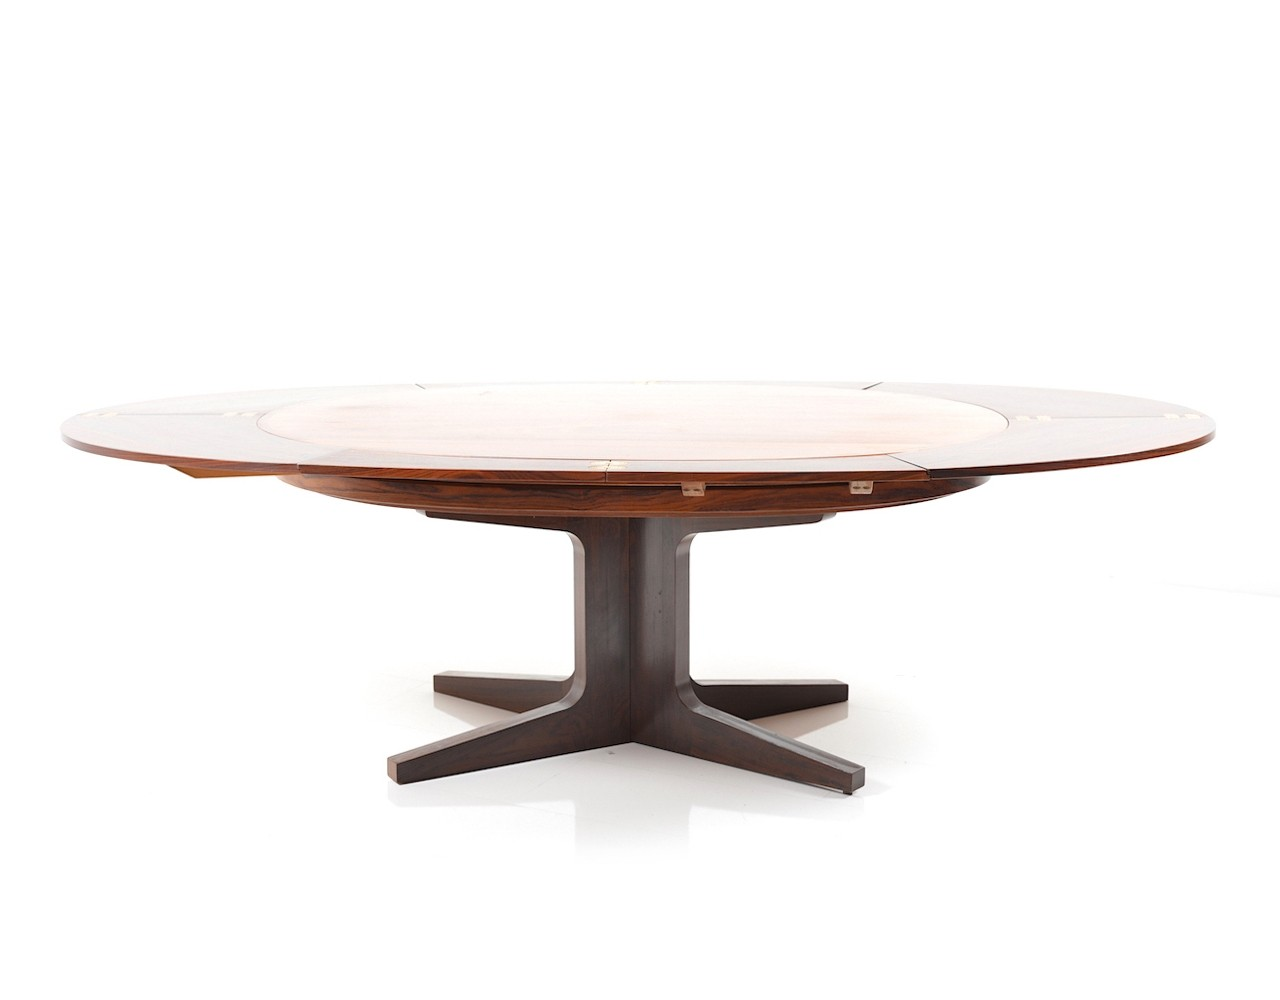 Big Dining Table Part - 50: Tables / Dining Tables / Rare U0026 Fantastic Big Dyrlund Smith U0027Flip Flapu0027 Dining  Table In Rosewood, 1960s